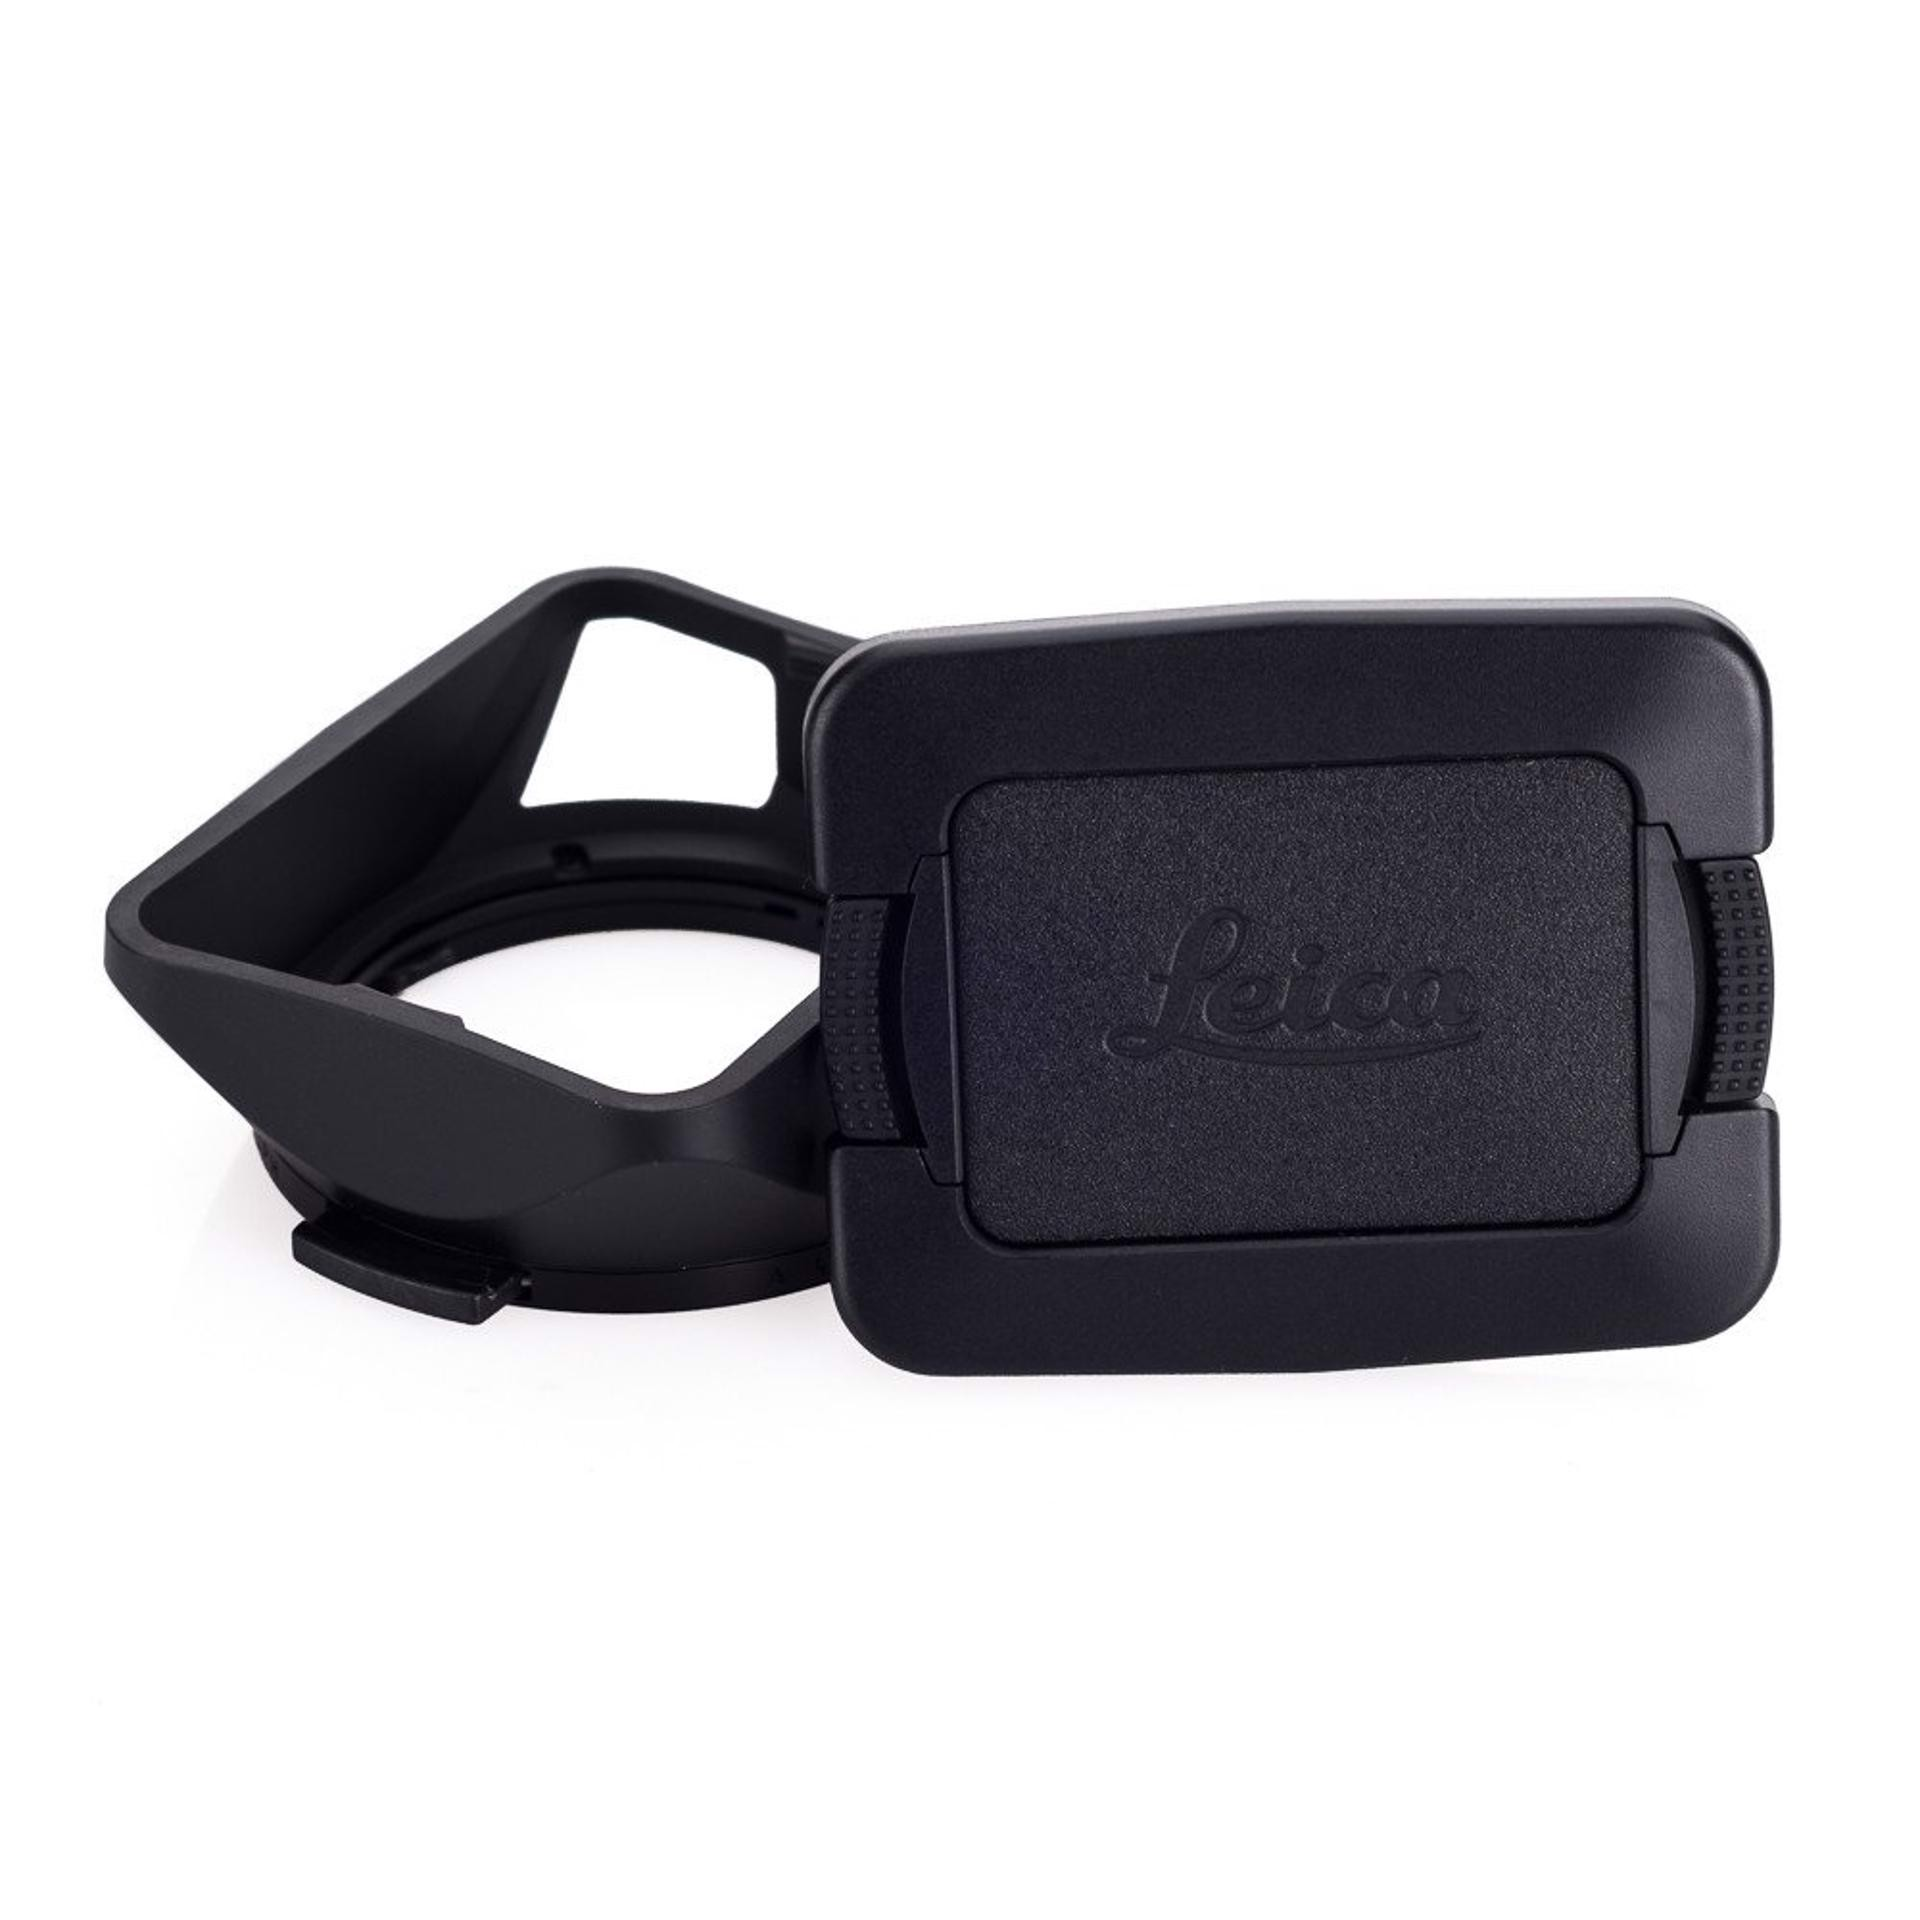 Leica Hood for 28mm f/2.0 ASPH